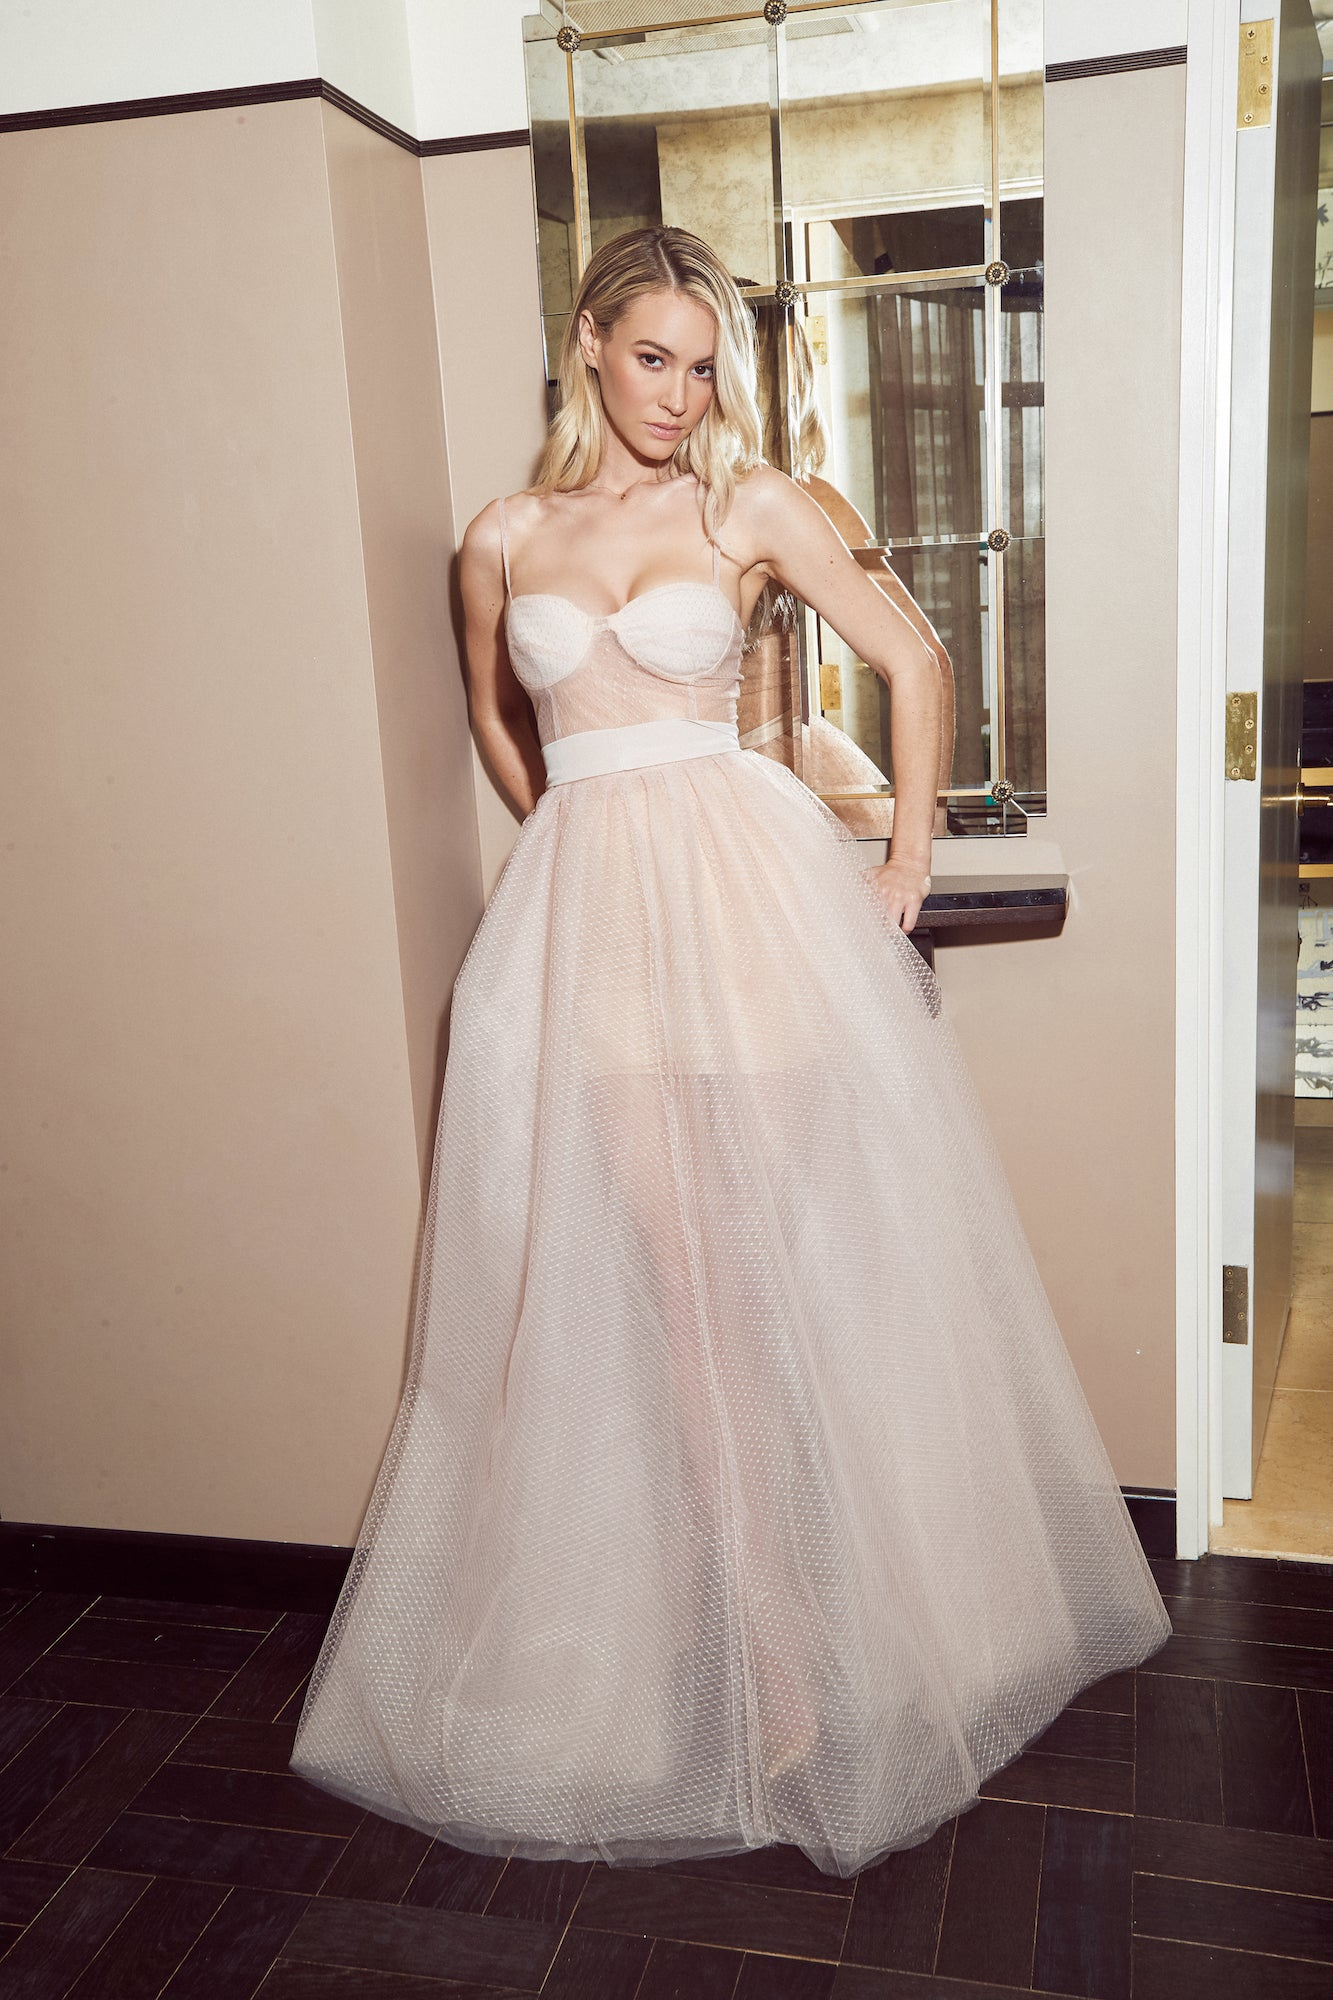 CINDY SWEETHEART GOWN